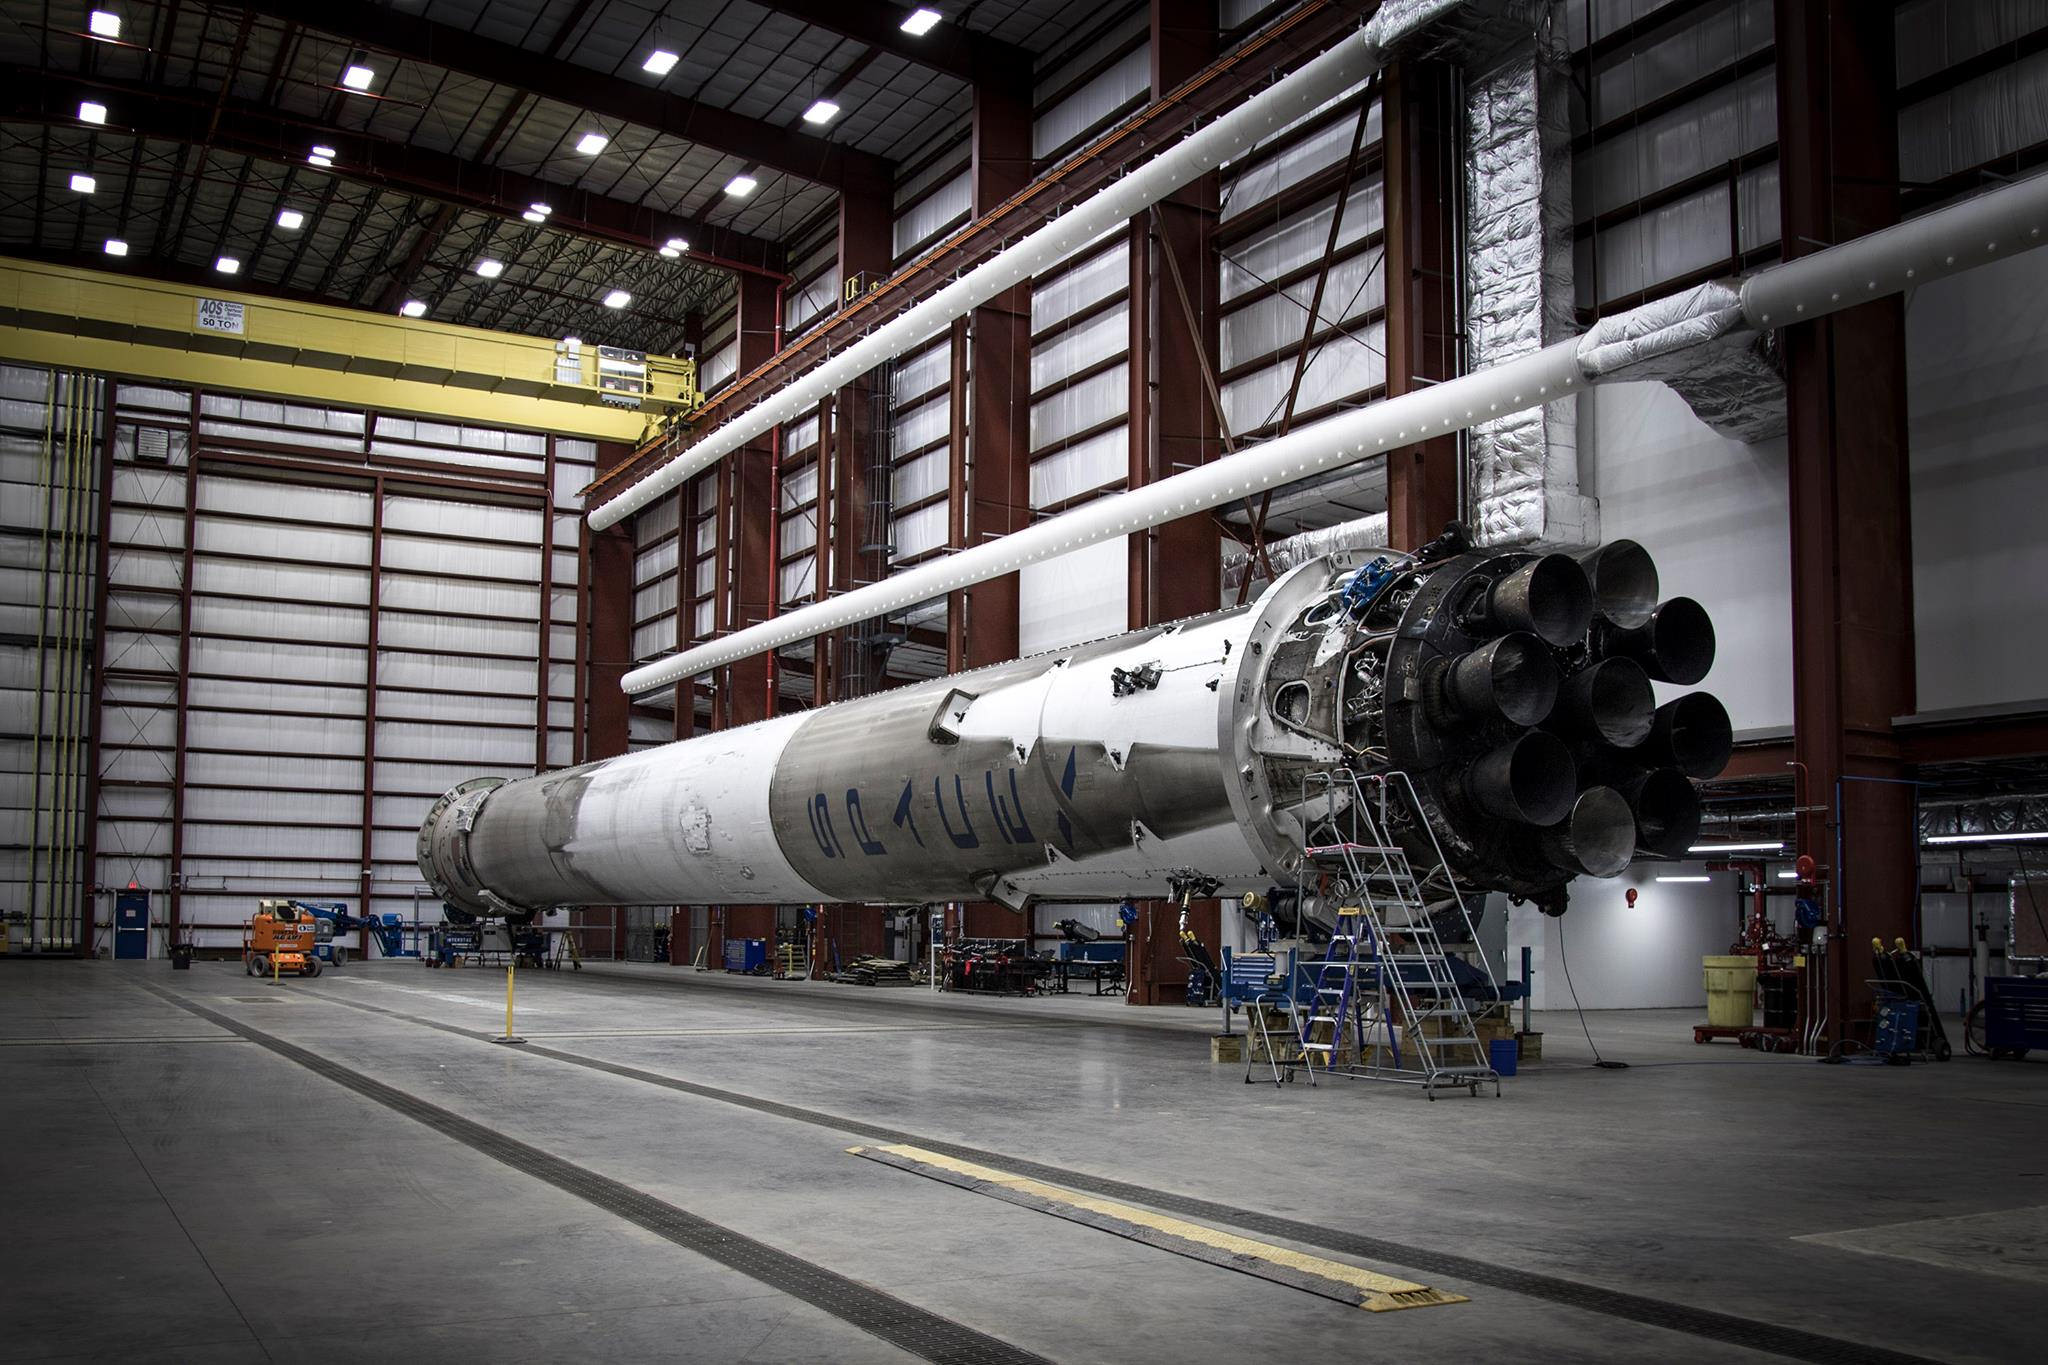 SpaceX Tests Recovered Falcon 9 Stage and Prepares for Next Launch